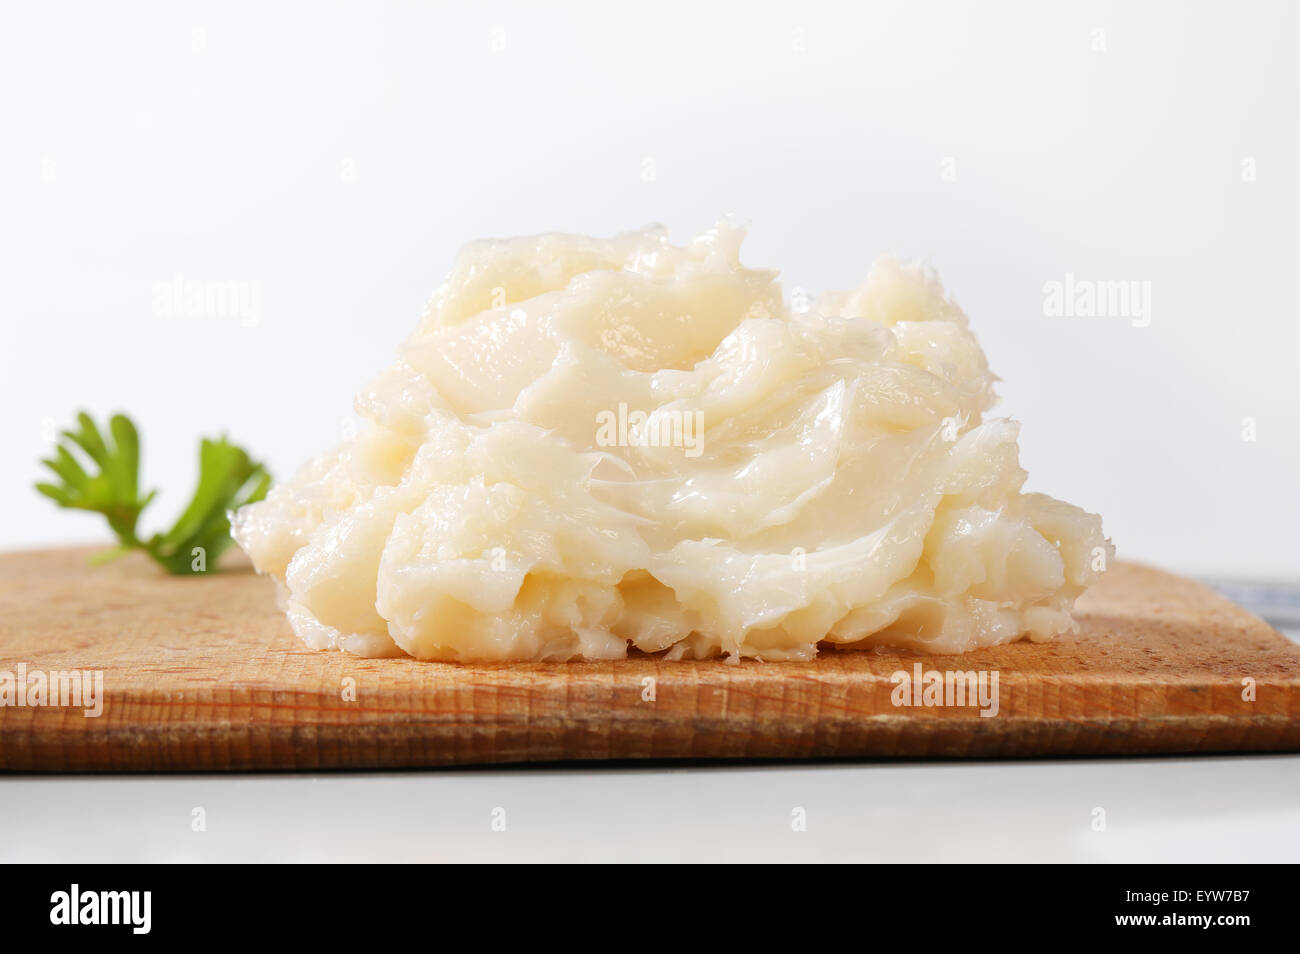 Pork lard spread on cutting board - Stock Image